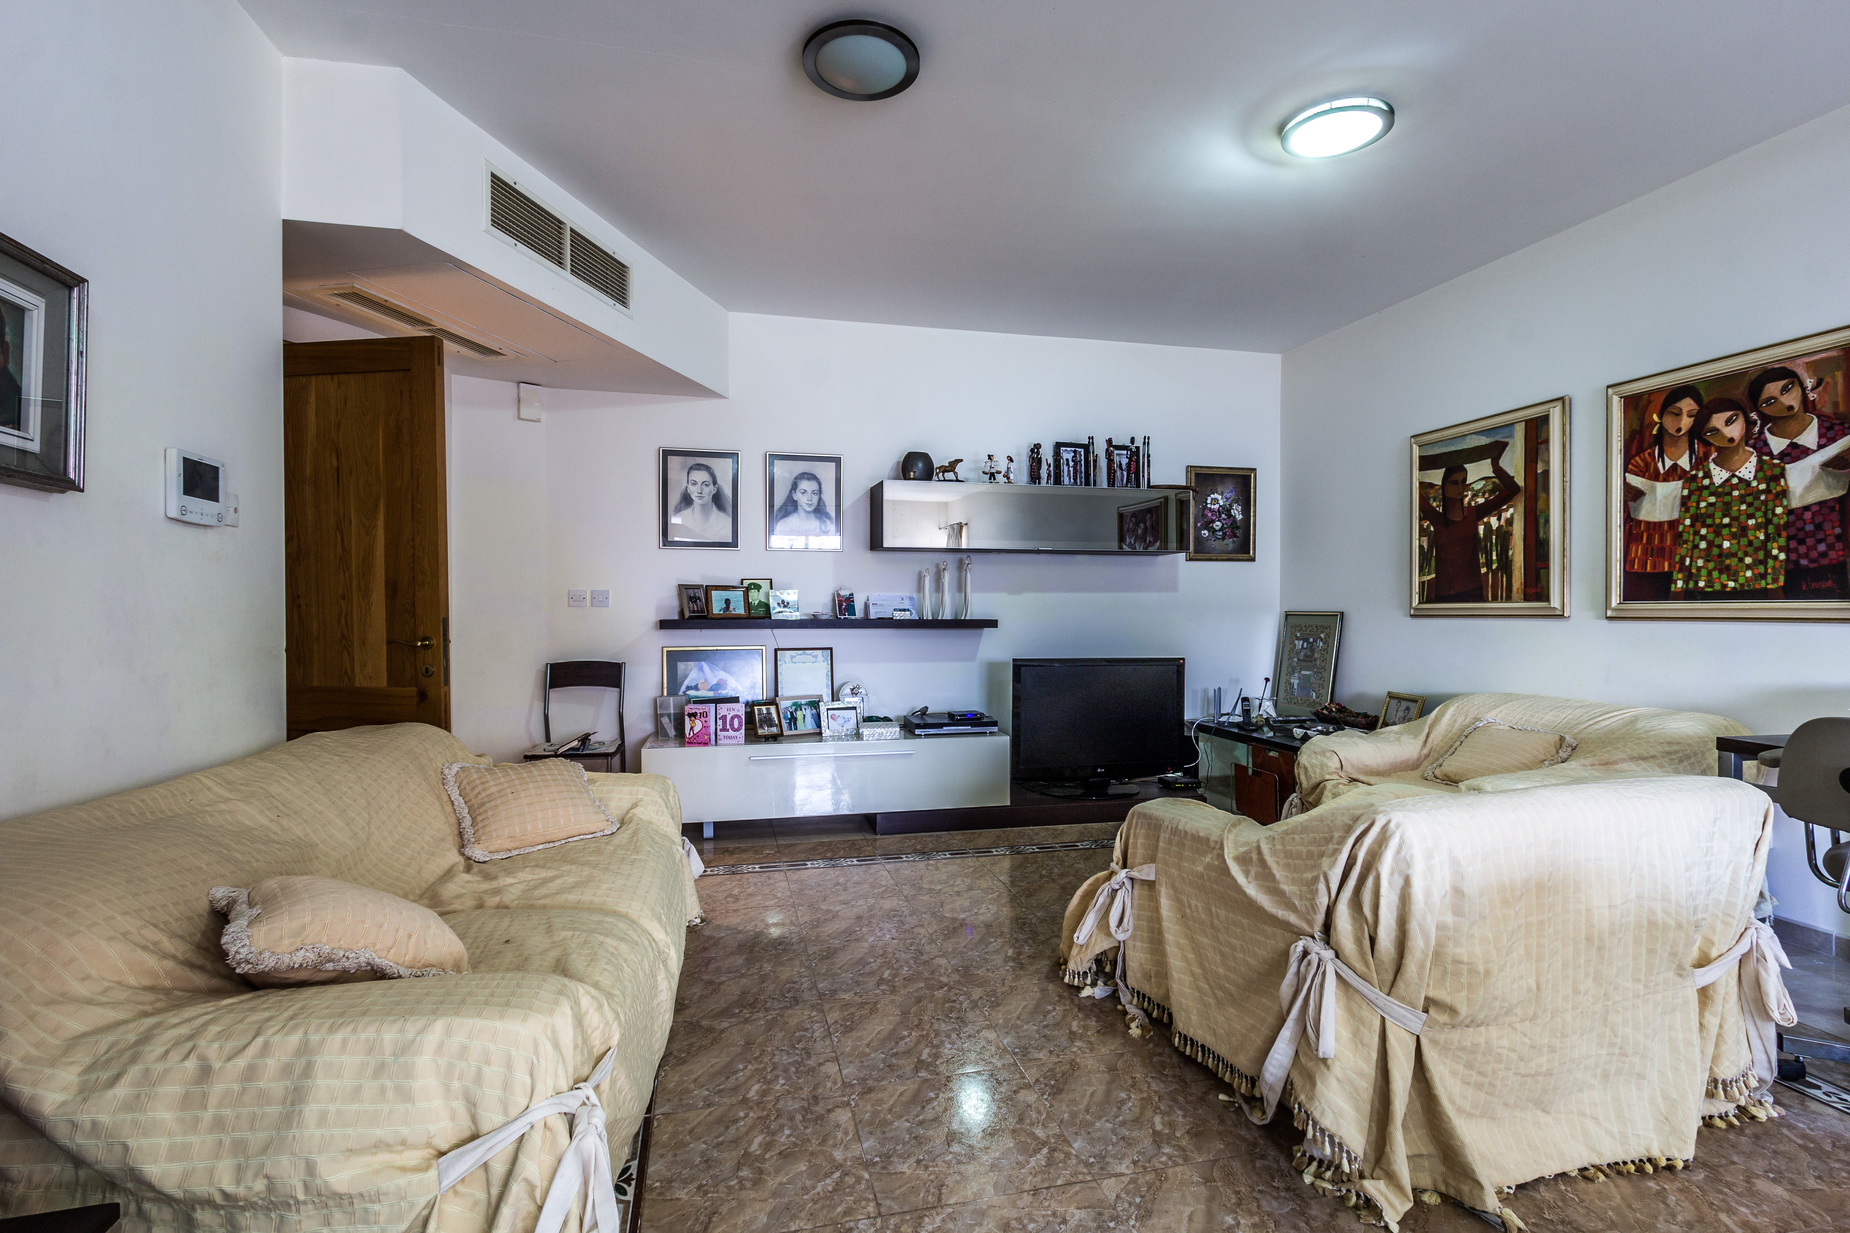 3 bed Apartment For Sale in Rabat, Rabat - thumb 16